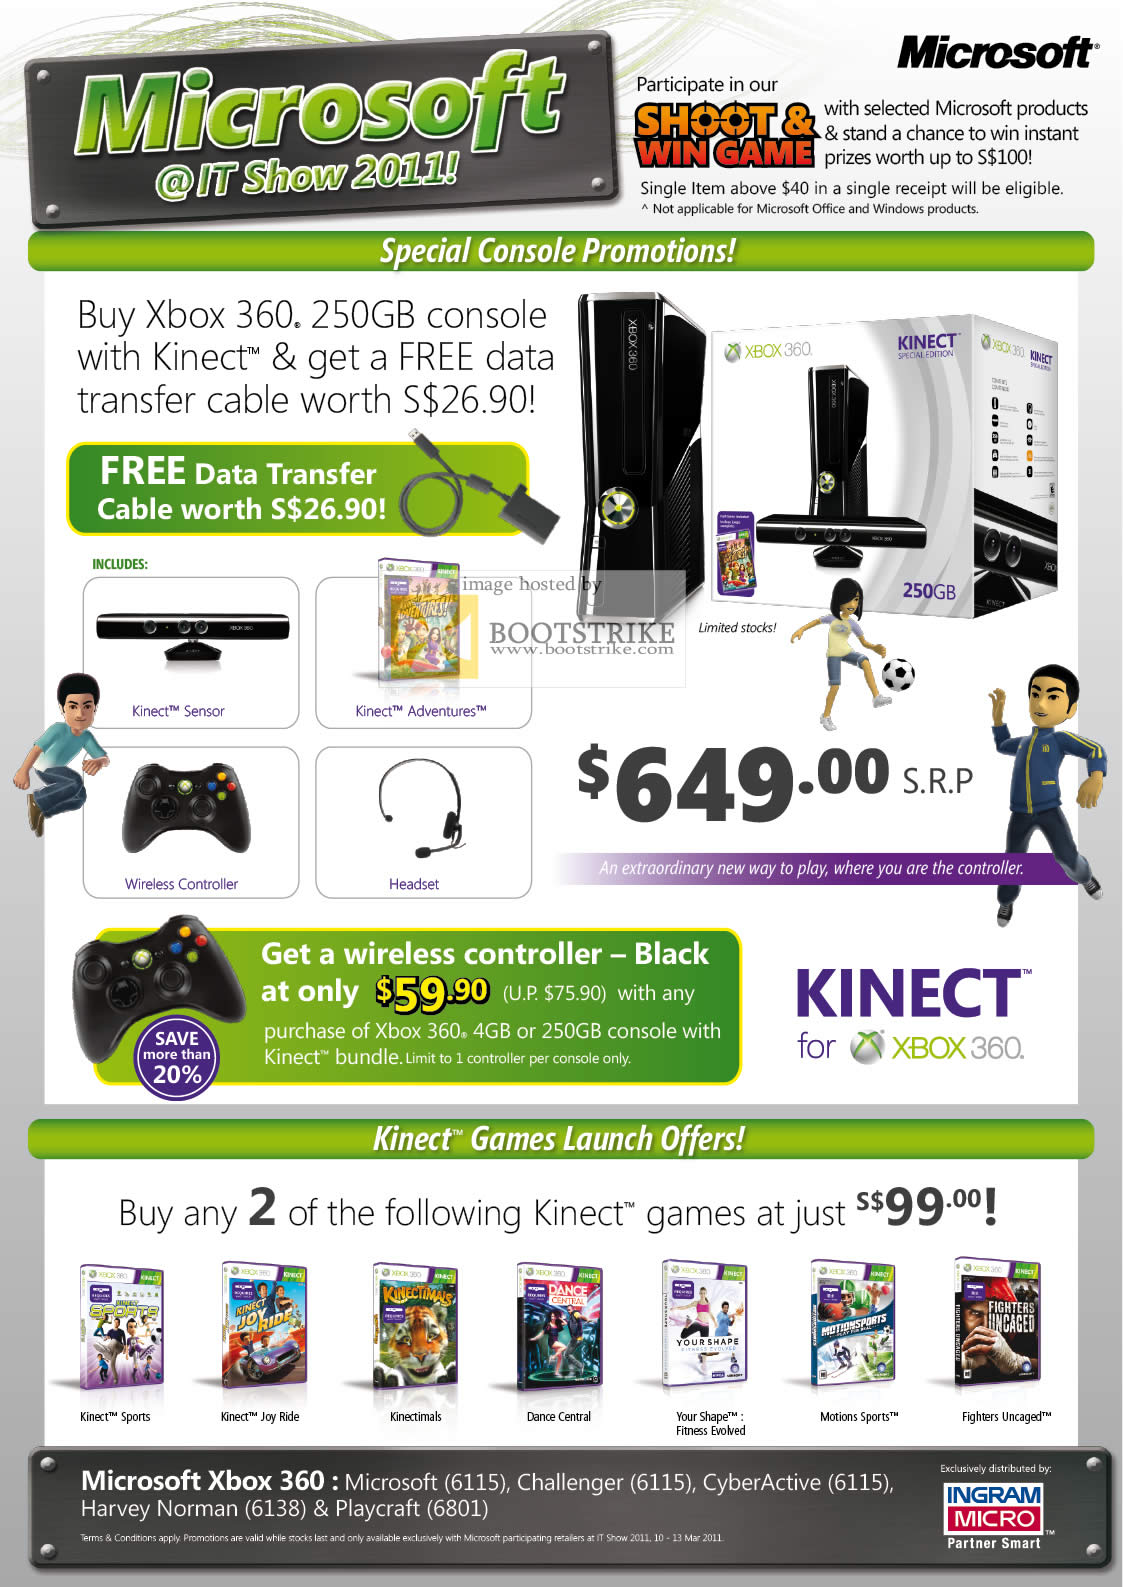 IT Show 2011 price list image brochure of Microsoft Xbox 360 Kinect Wireless Controller Game Launches Sports Joy Ride Dance Central Kinectimals Motions Sports